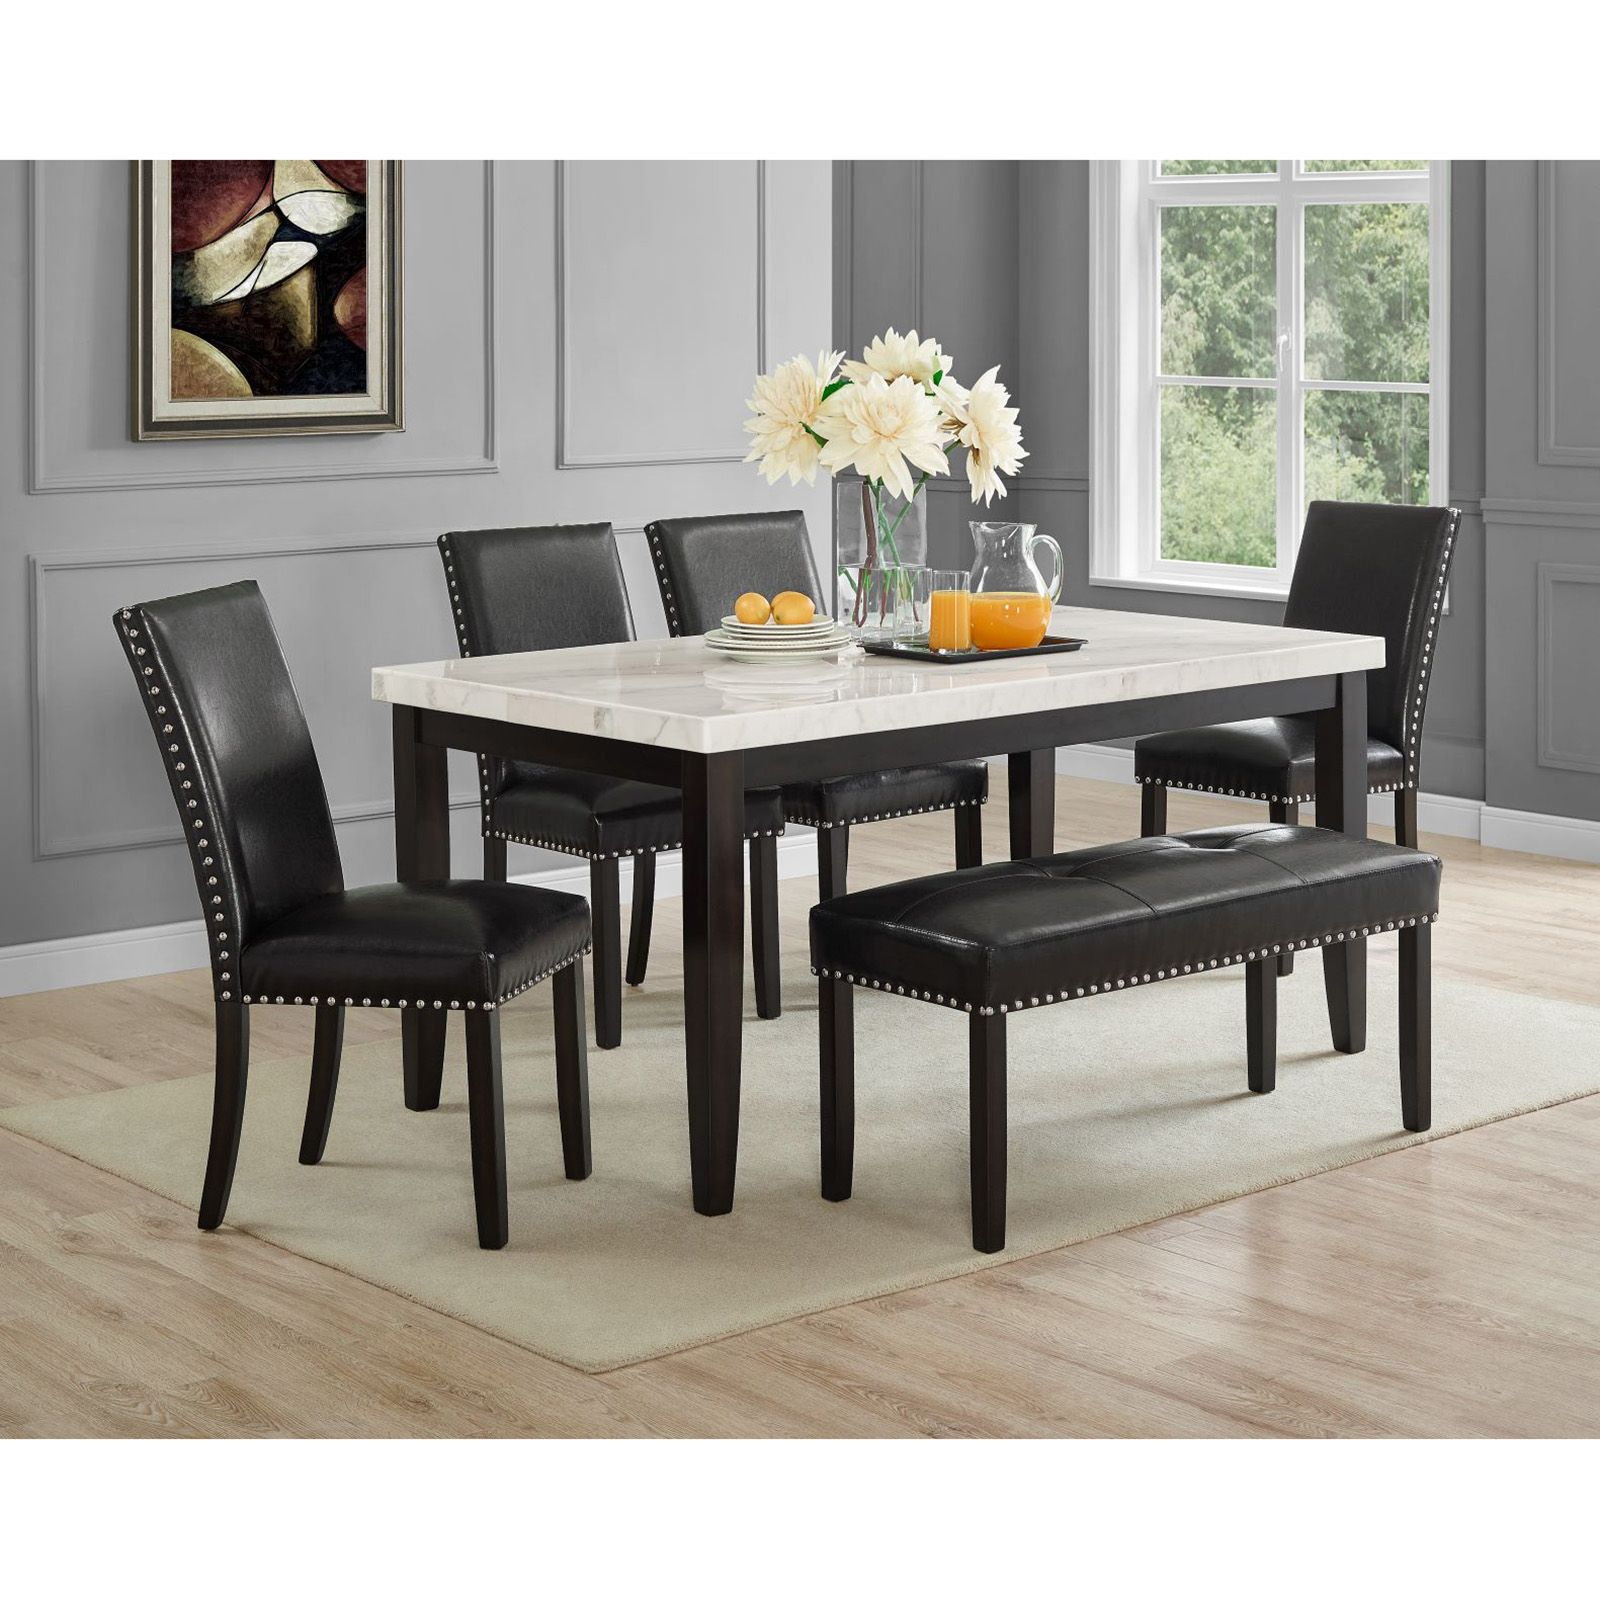 Heather Carrera White Marble Top 6 Pc Dining Set Bjs Wholesale Club